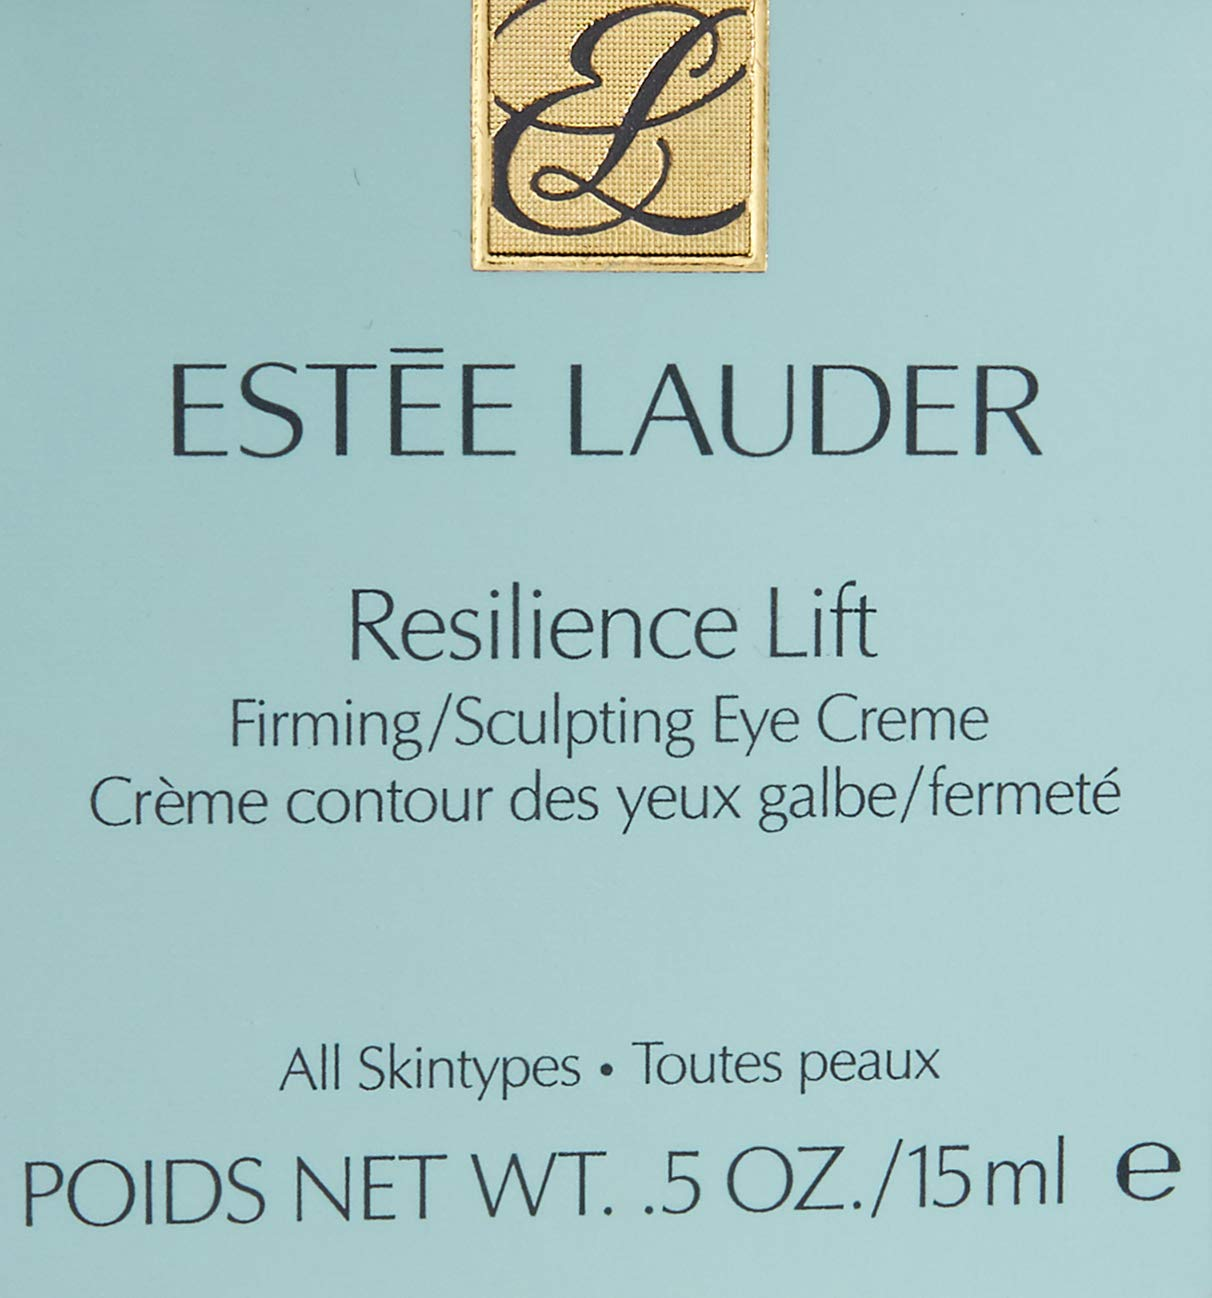 Estee Lauder Resilience Lift Firming/Sculpting Eye Cream for Unisex, 0.5 Ounce by Estee Lauder (Image #3)